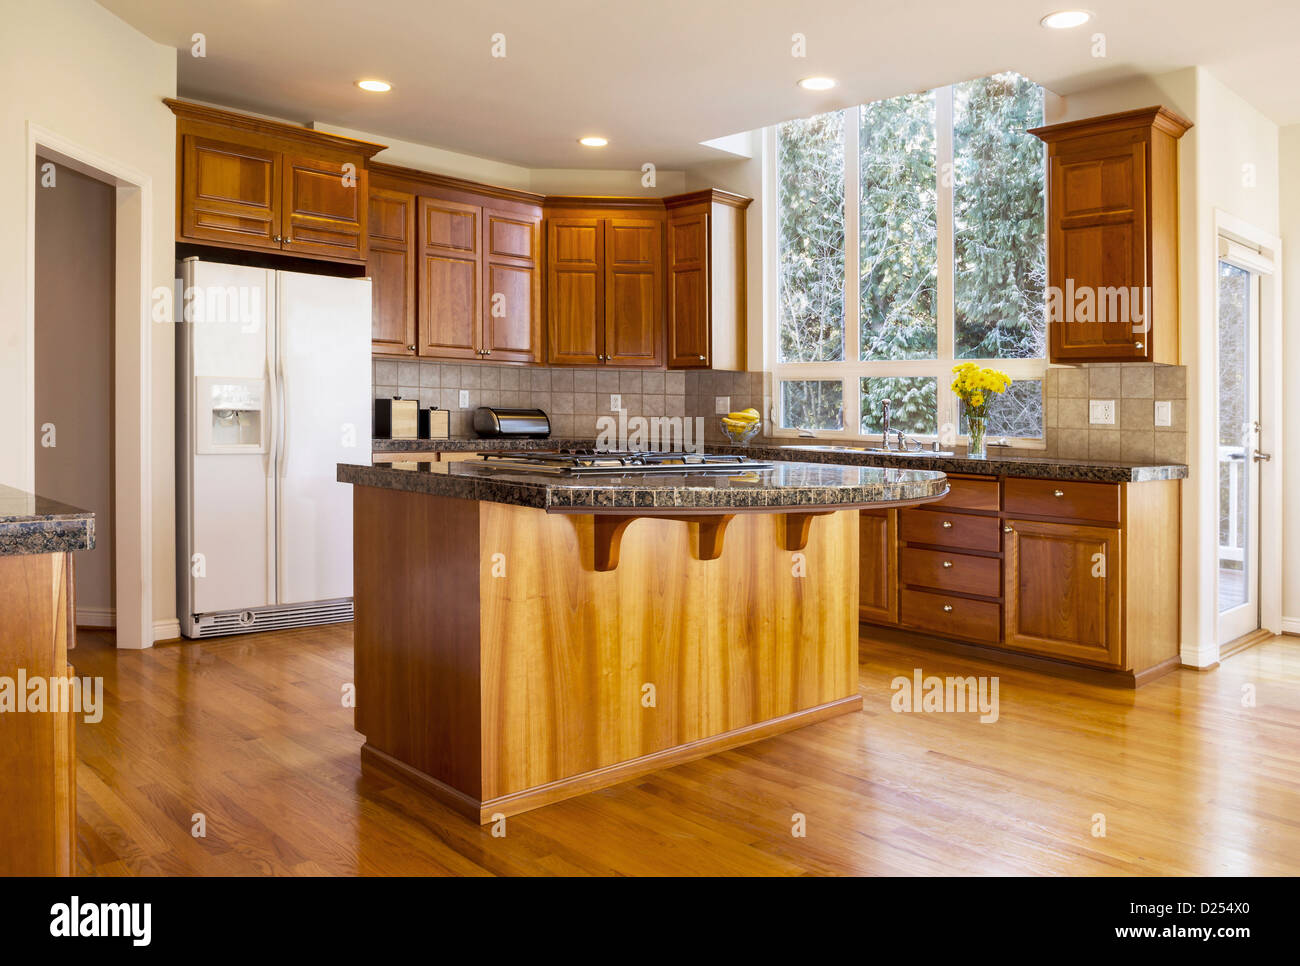 Oak Kitchen Cabinets Stock Photos Oak Kitchen Cabinets Stock